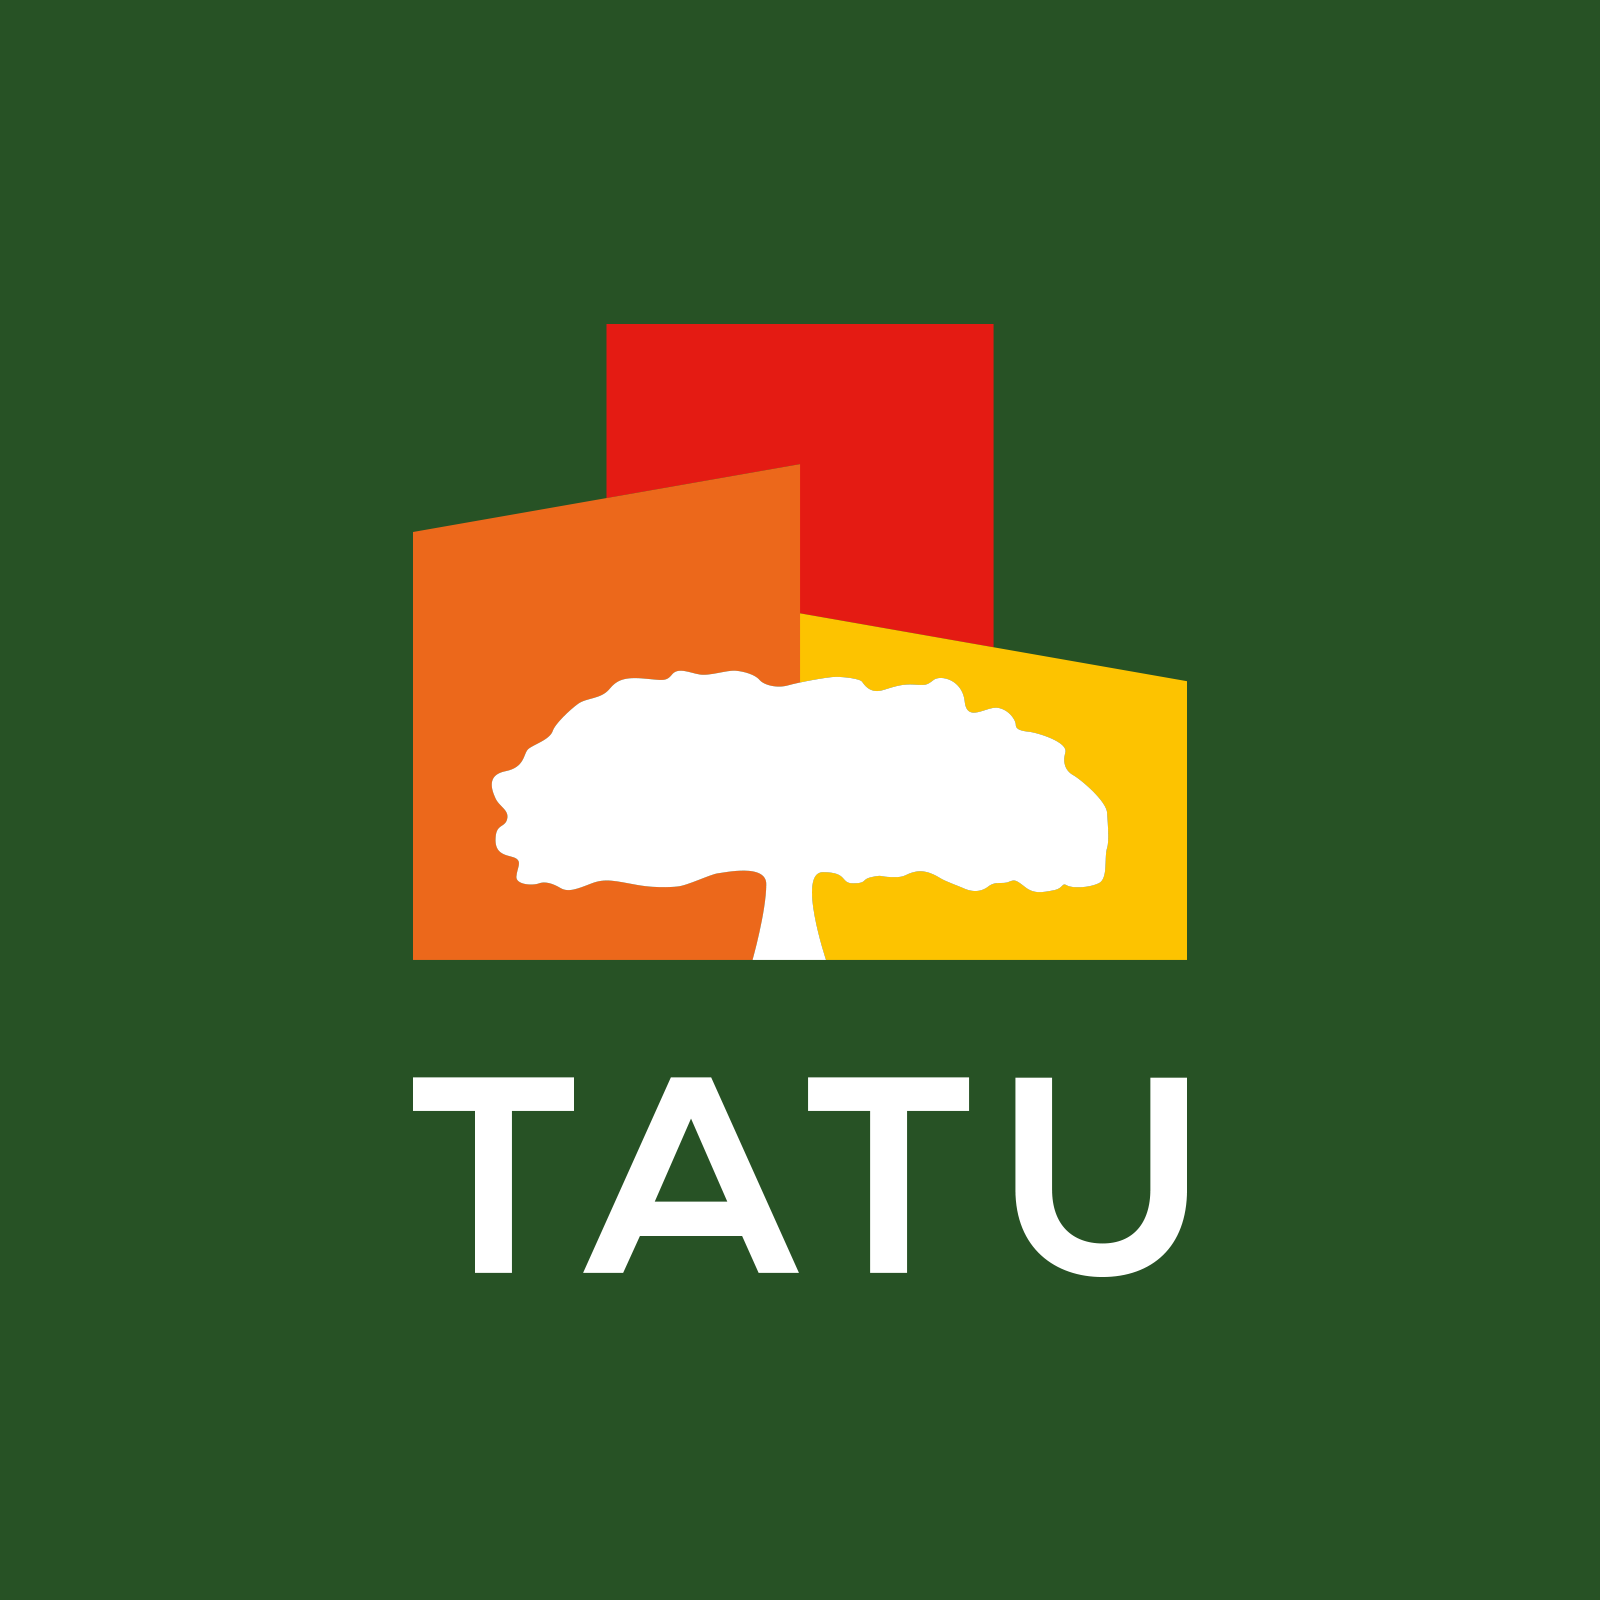 International arbitration court makes ruling on Tatu City